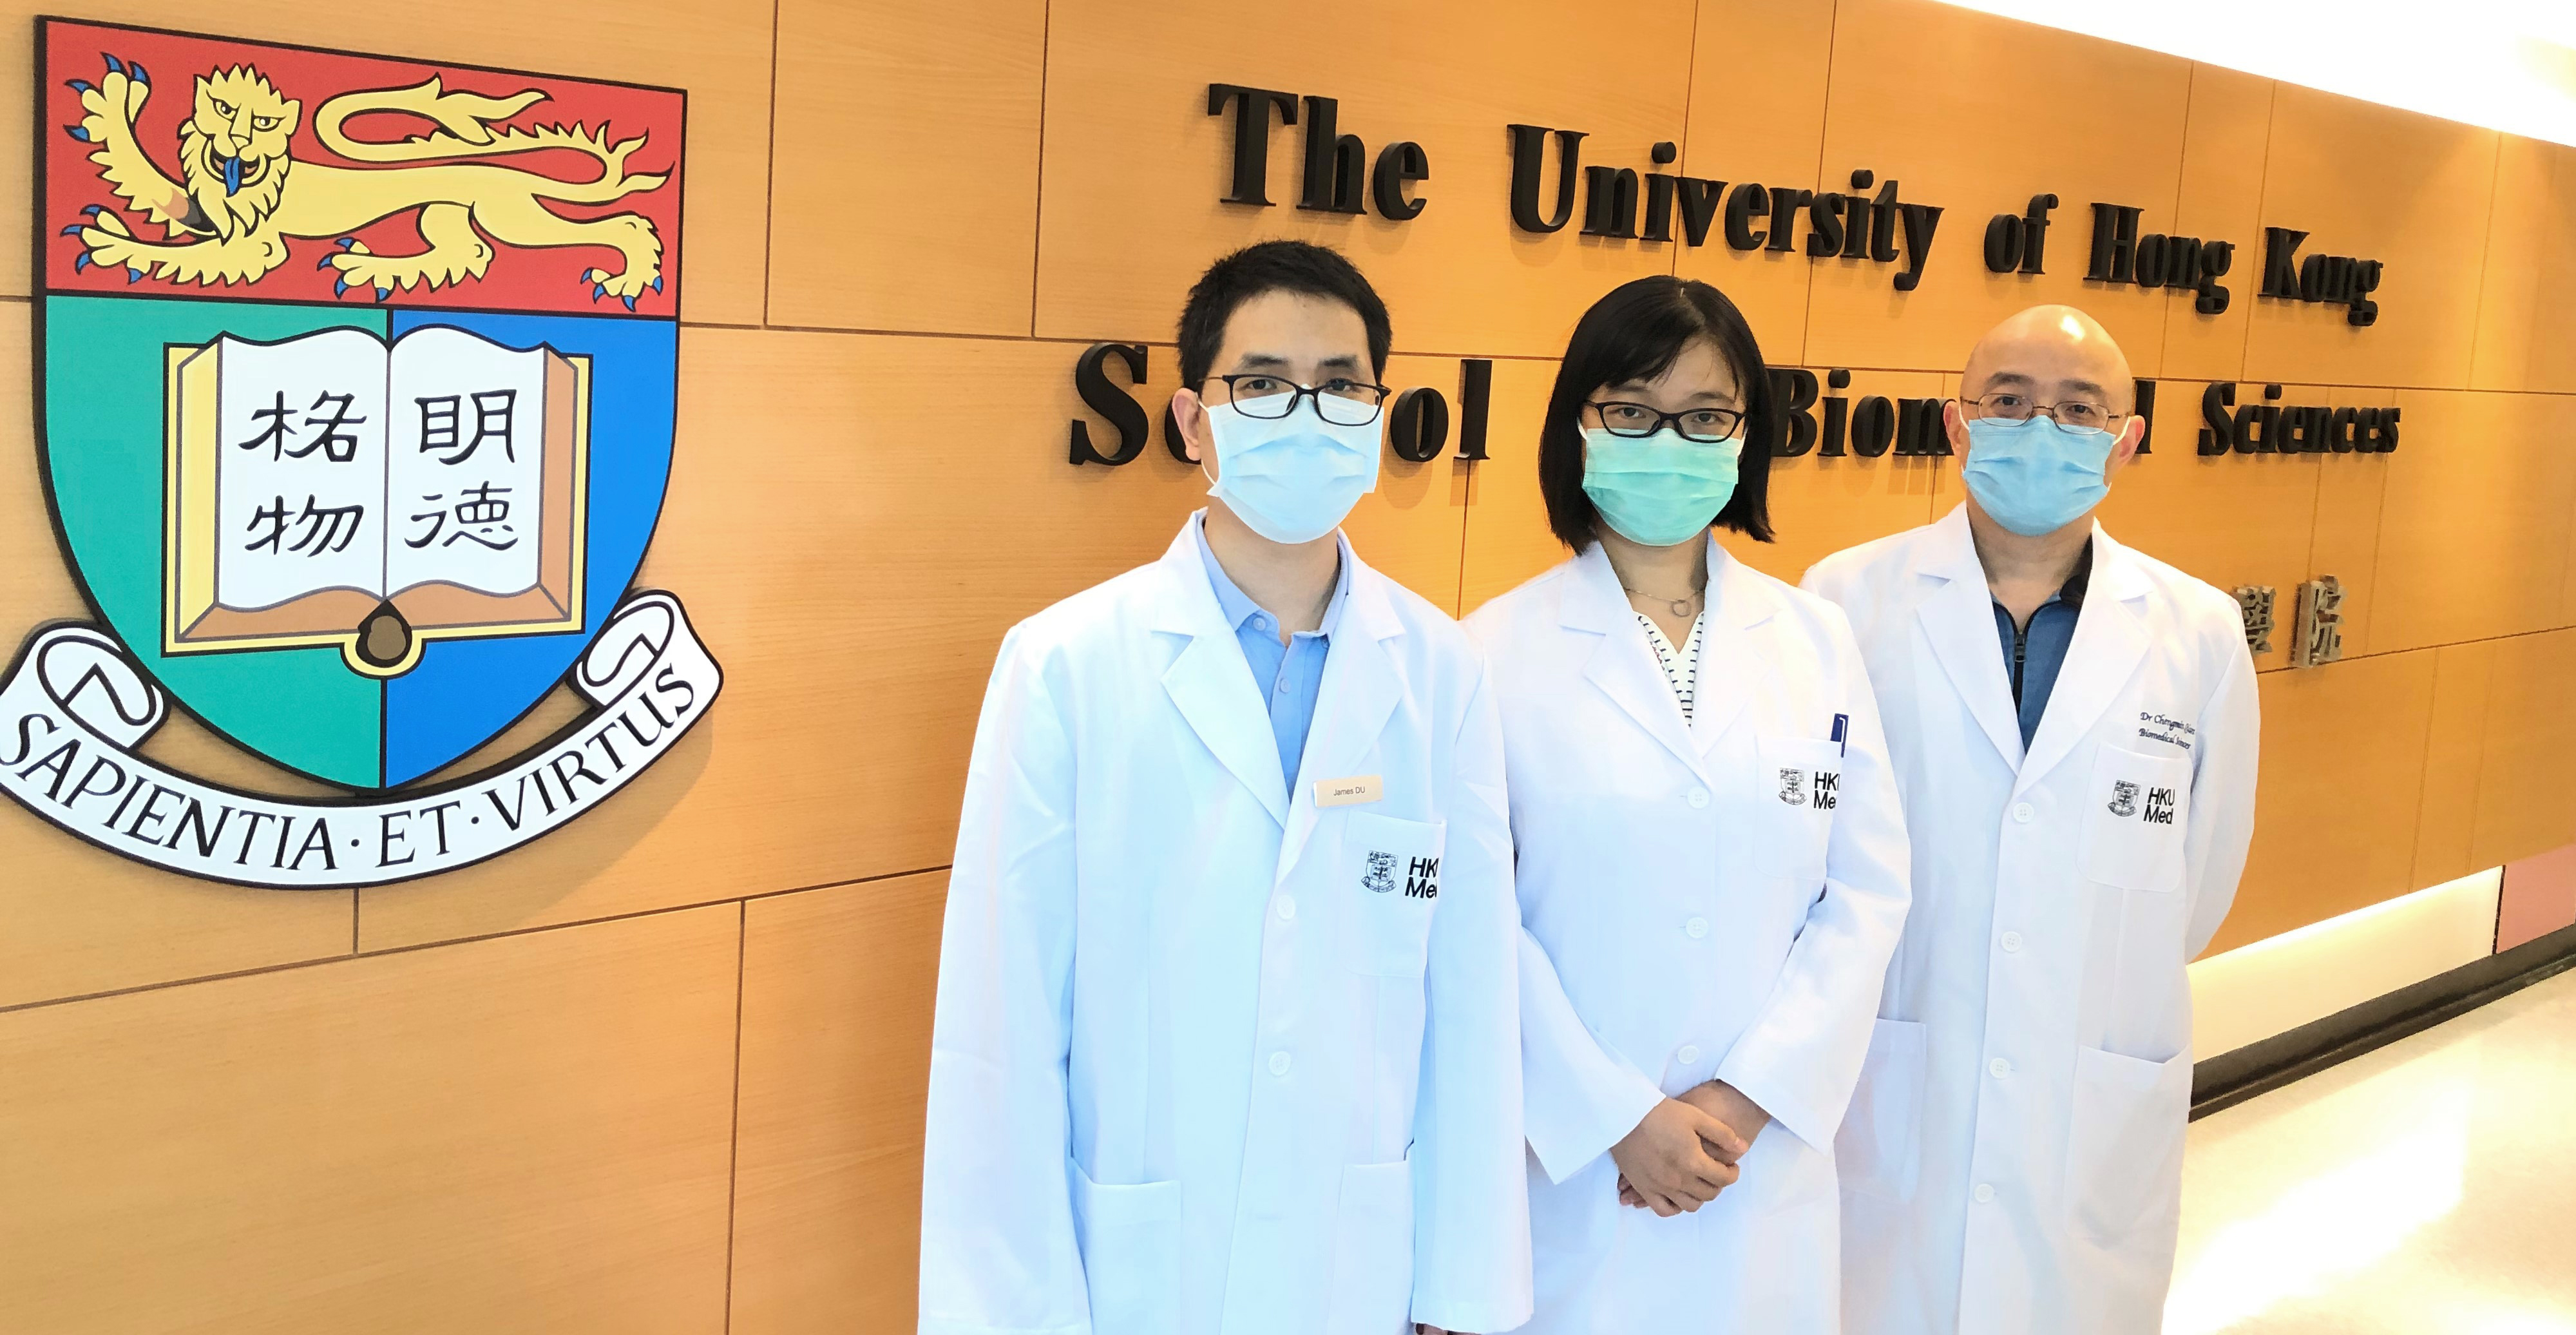 HKUMed research team members: Dr Qian Chengmin, Dr Du Yongmin, and Dr Xie Si.